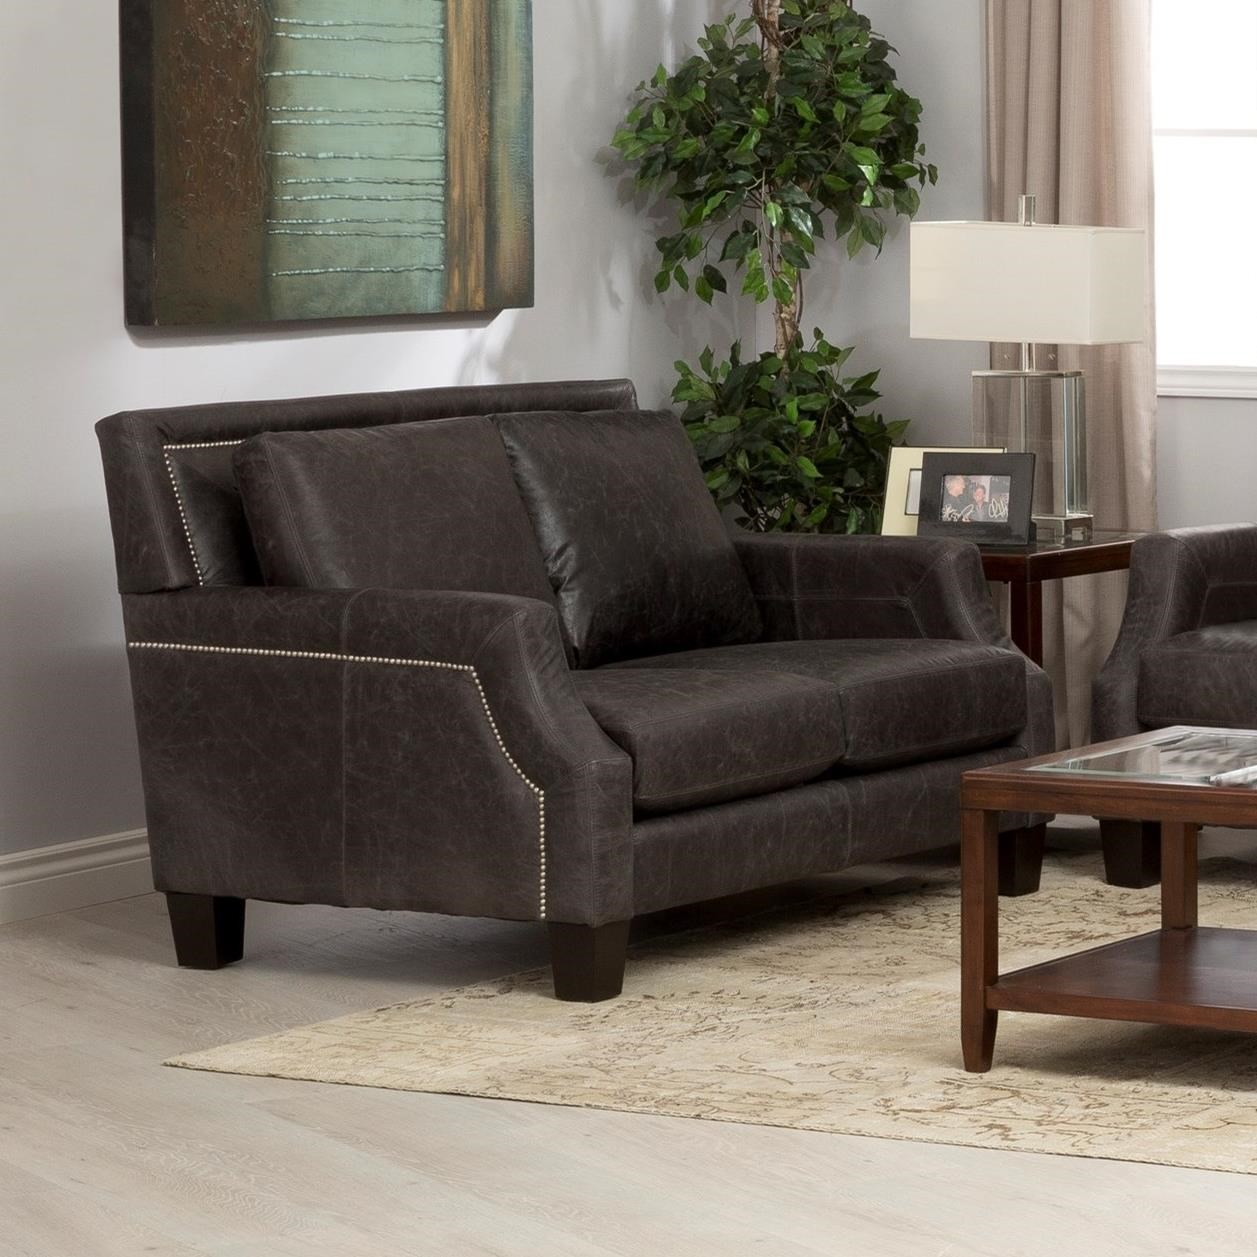 2135  Loveseat by Decor-Rest at Reid's Furniture